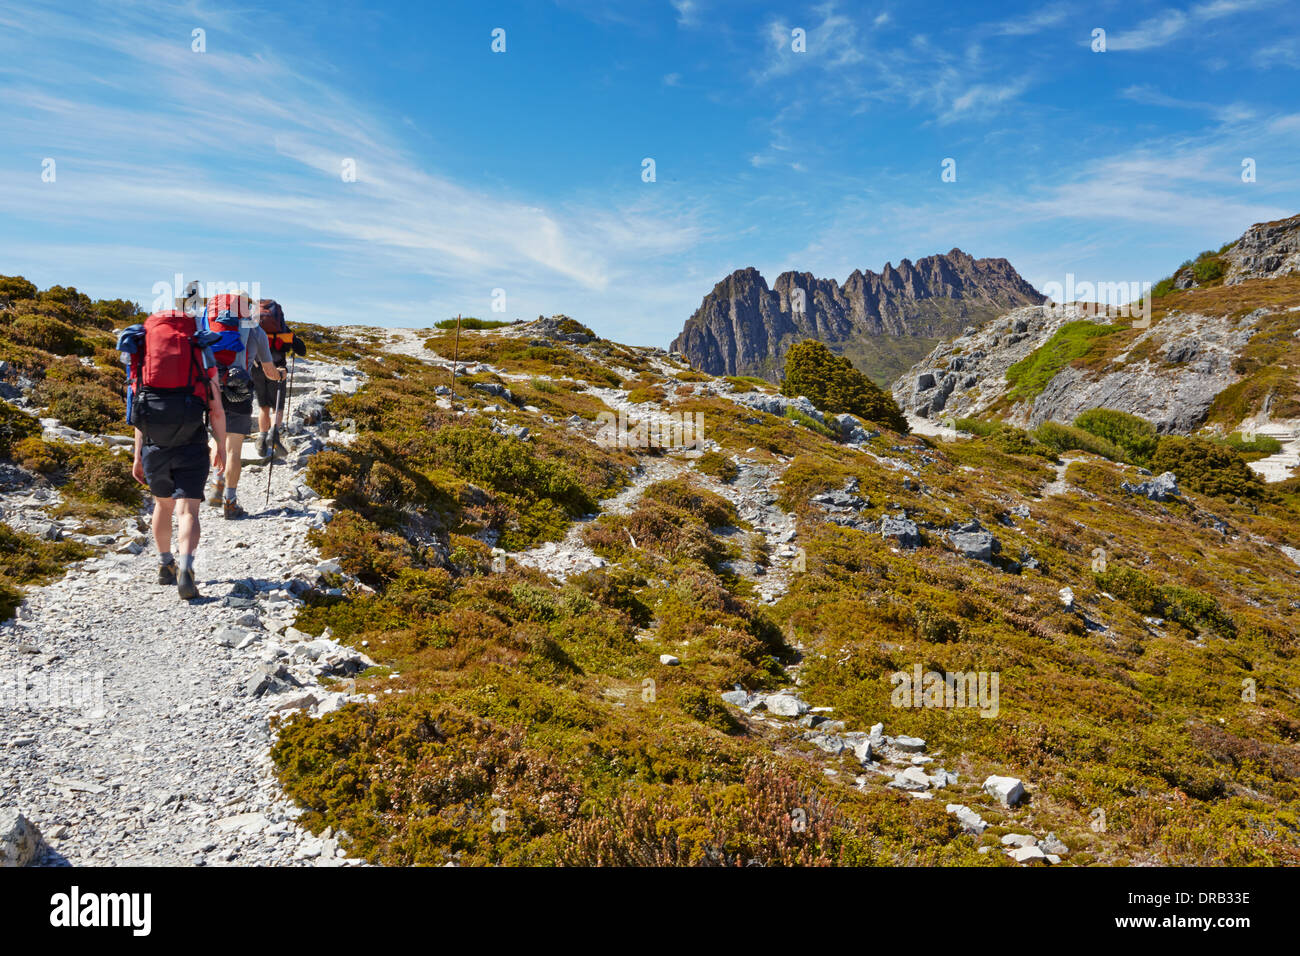 Hikers on the Overland Trail in Cradle Mountain National Park, Tasmania - Stock Image